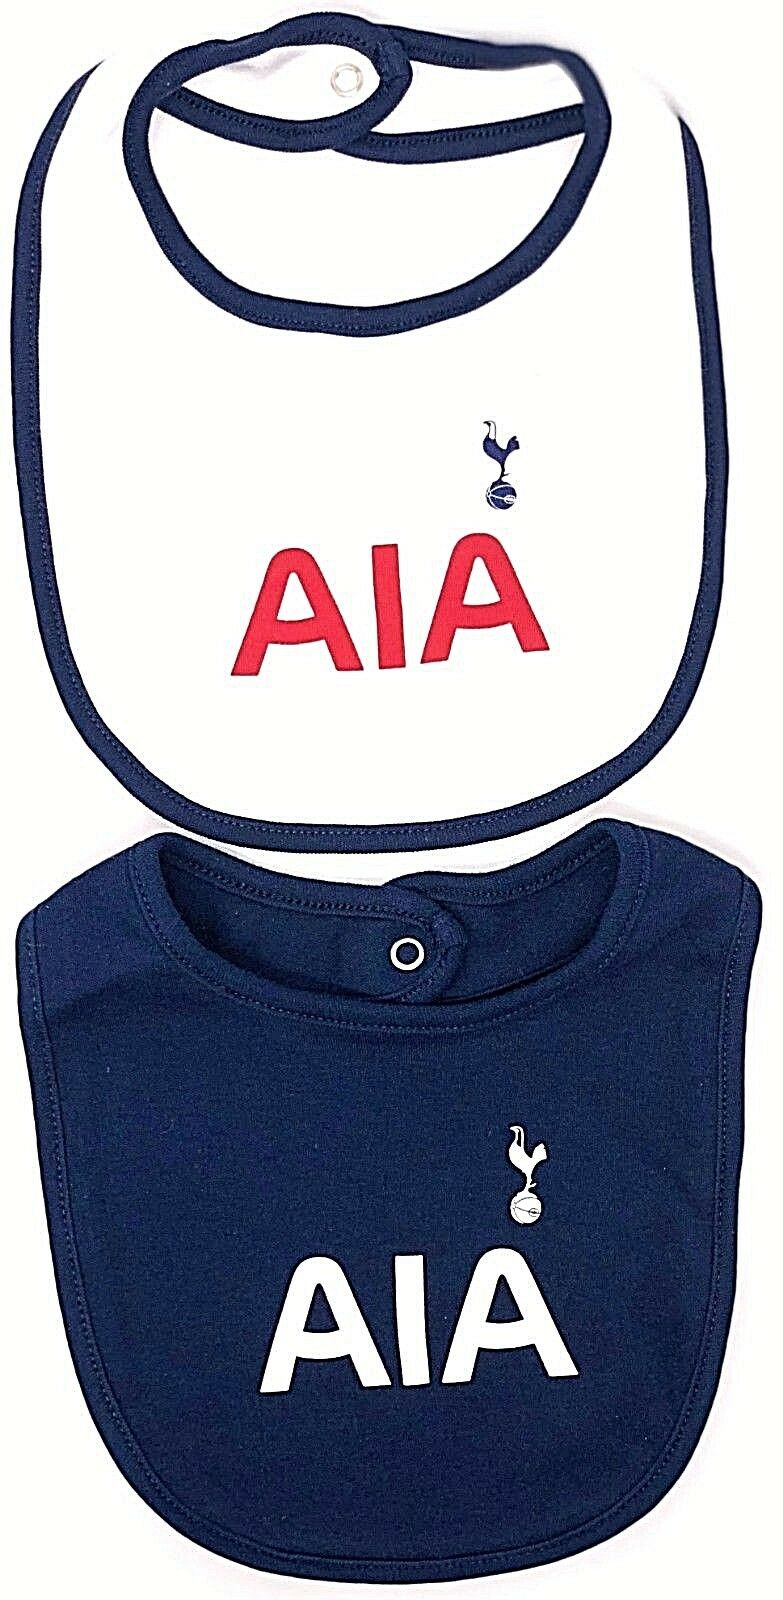 Tottenham Hotspur Fc Spurs Baby Football Kit T Shirt And Shorts